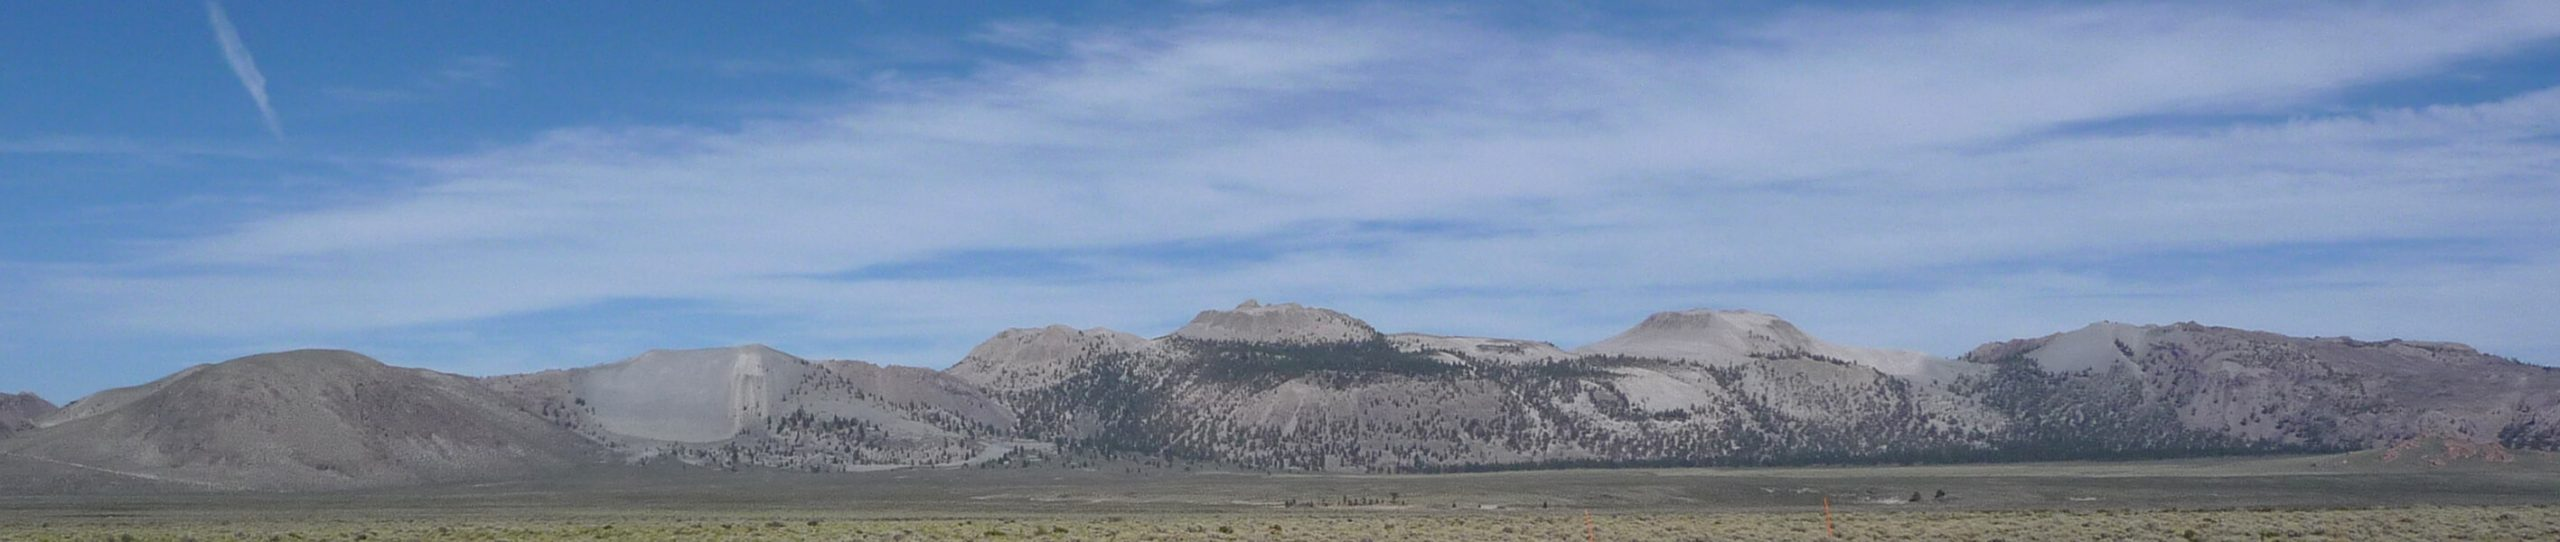 Mono Craters seen from US 395. Photo: Daniel Mayer